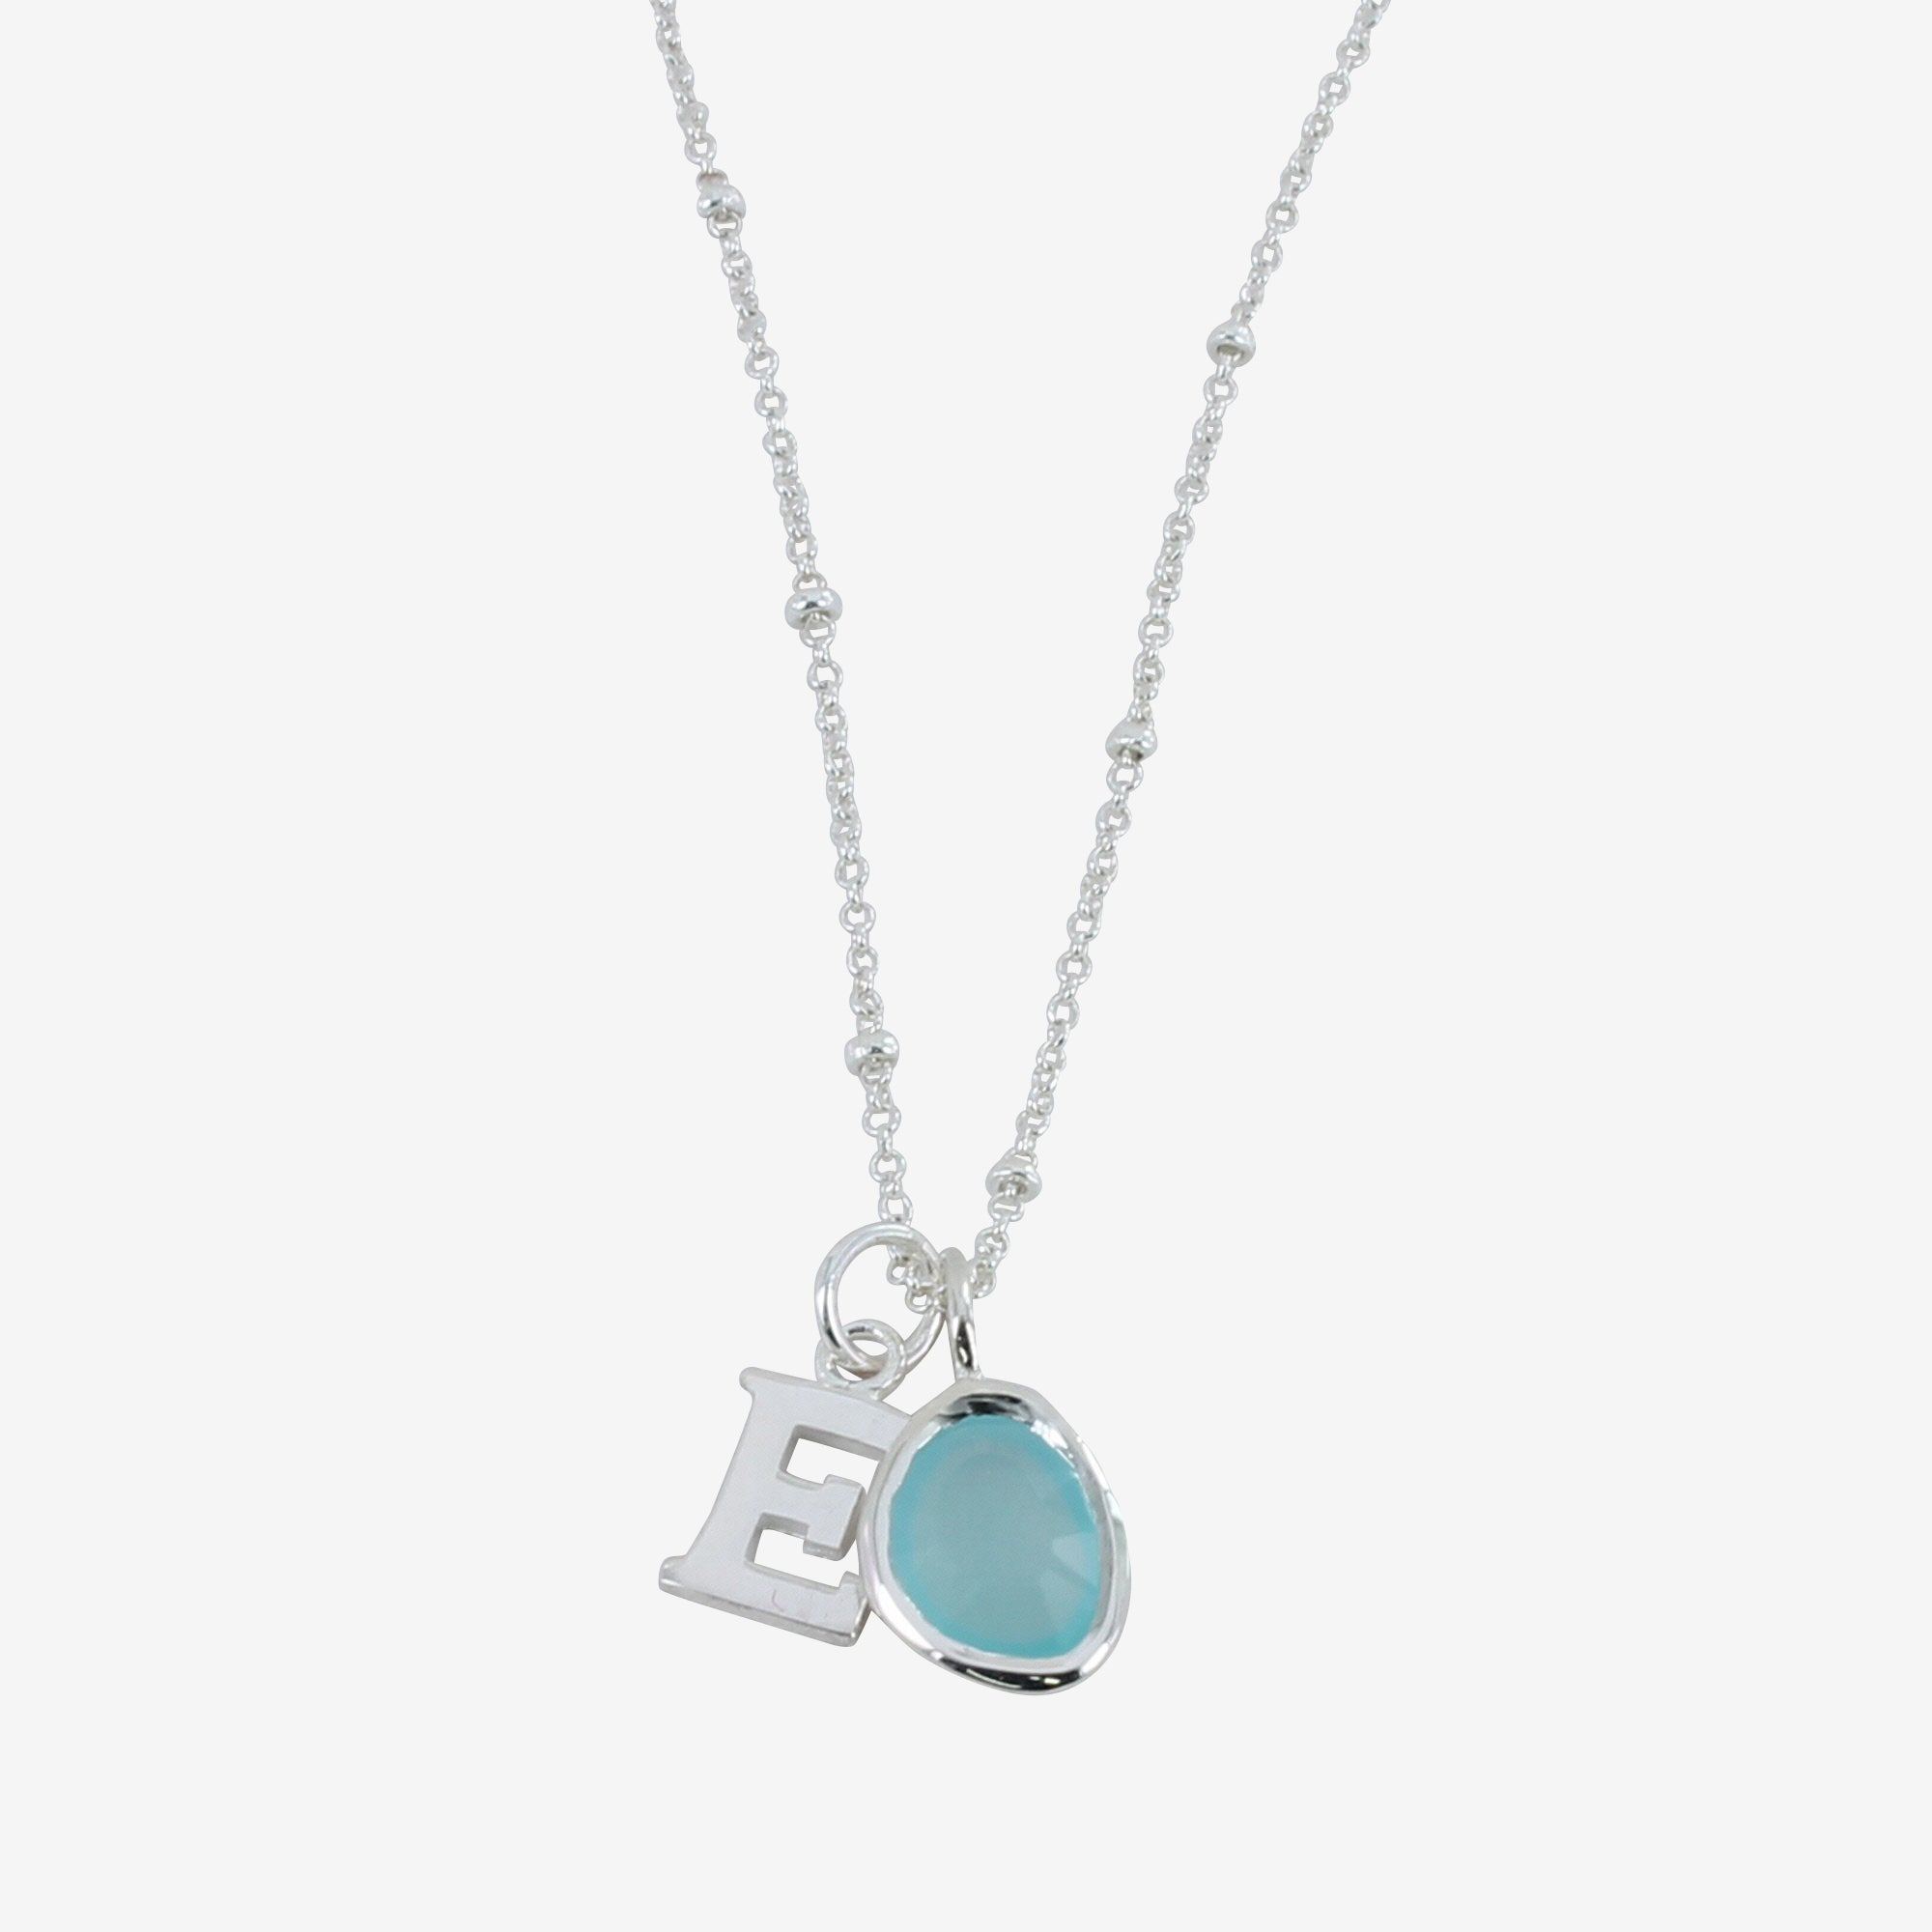 Aqua Silver Necklace with Initial